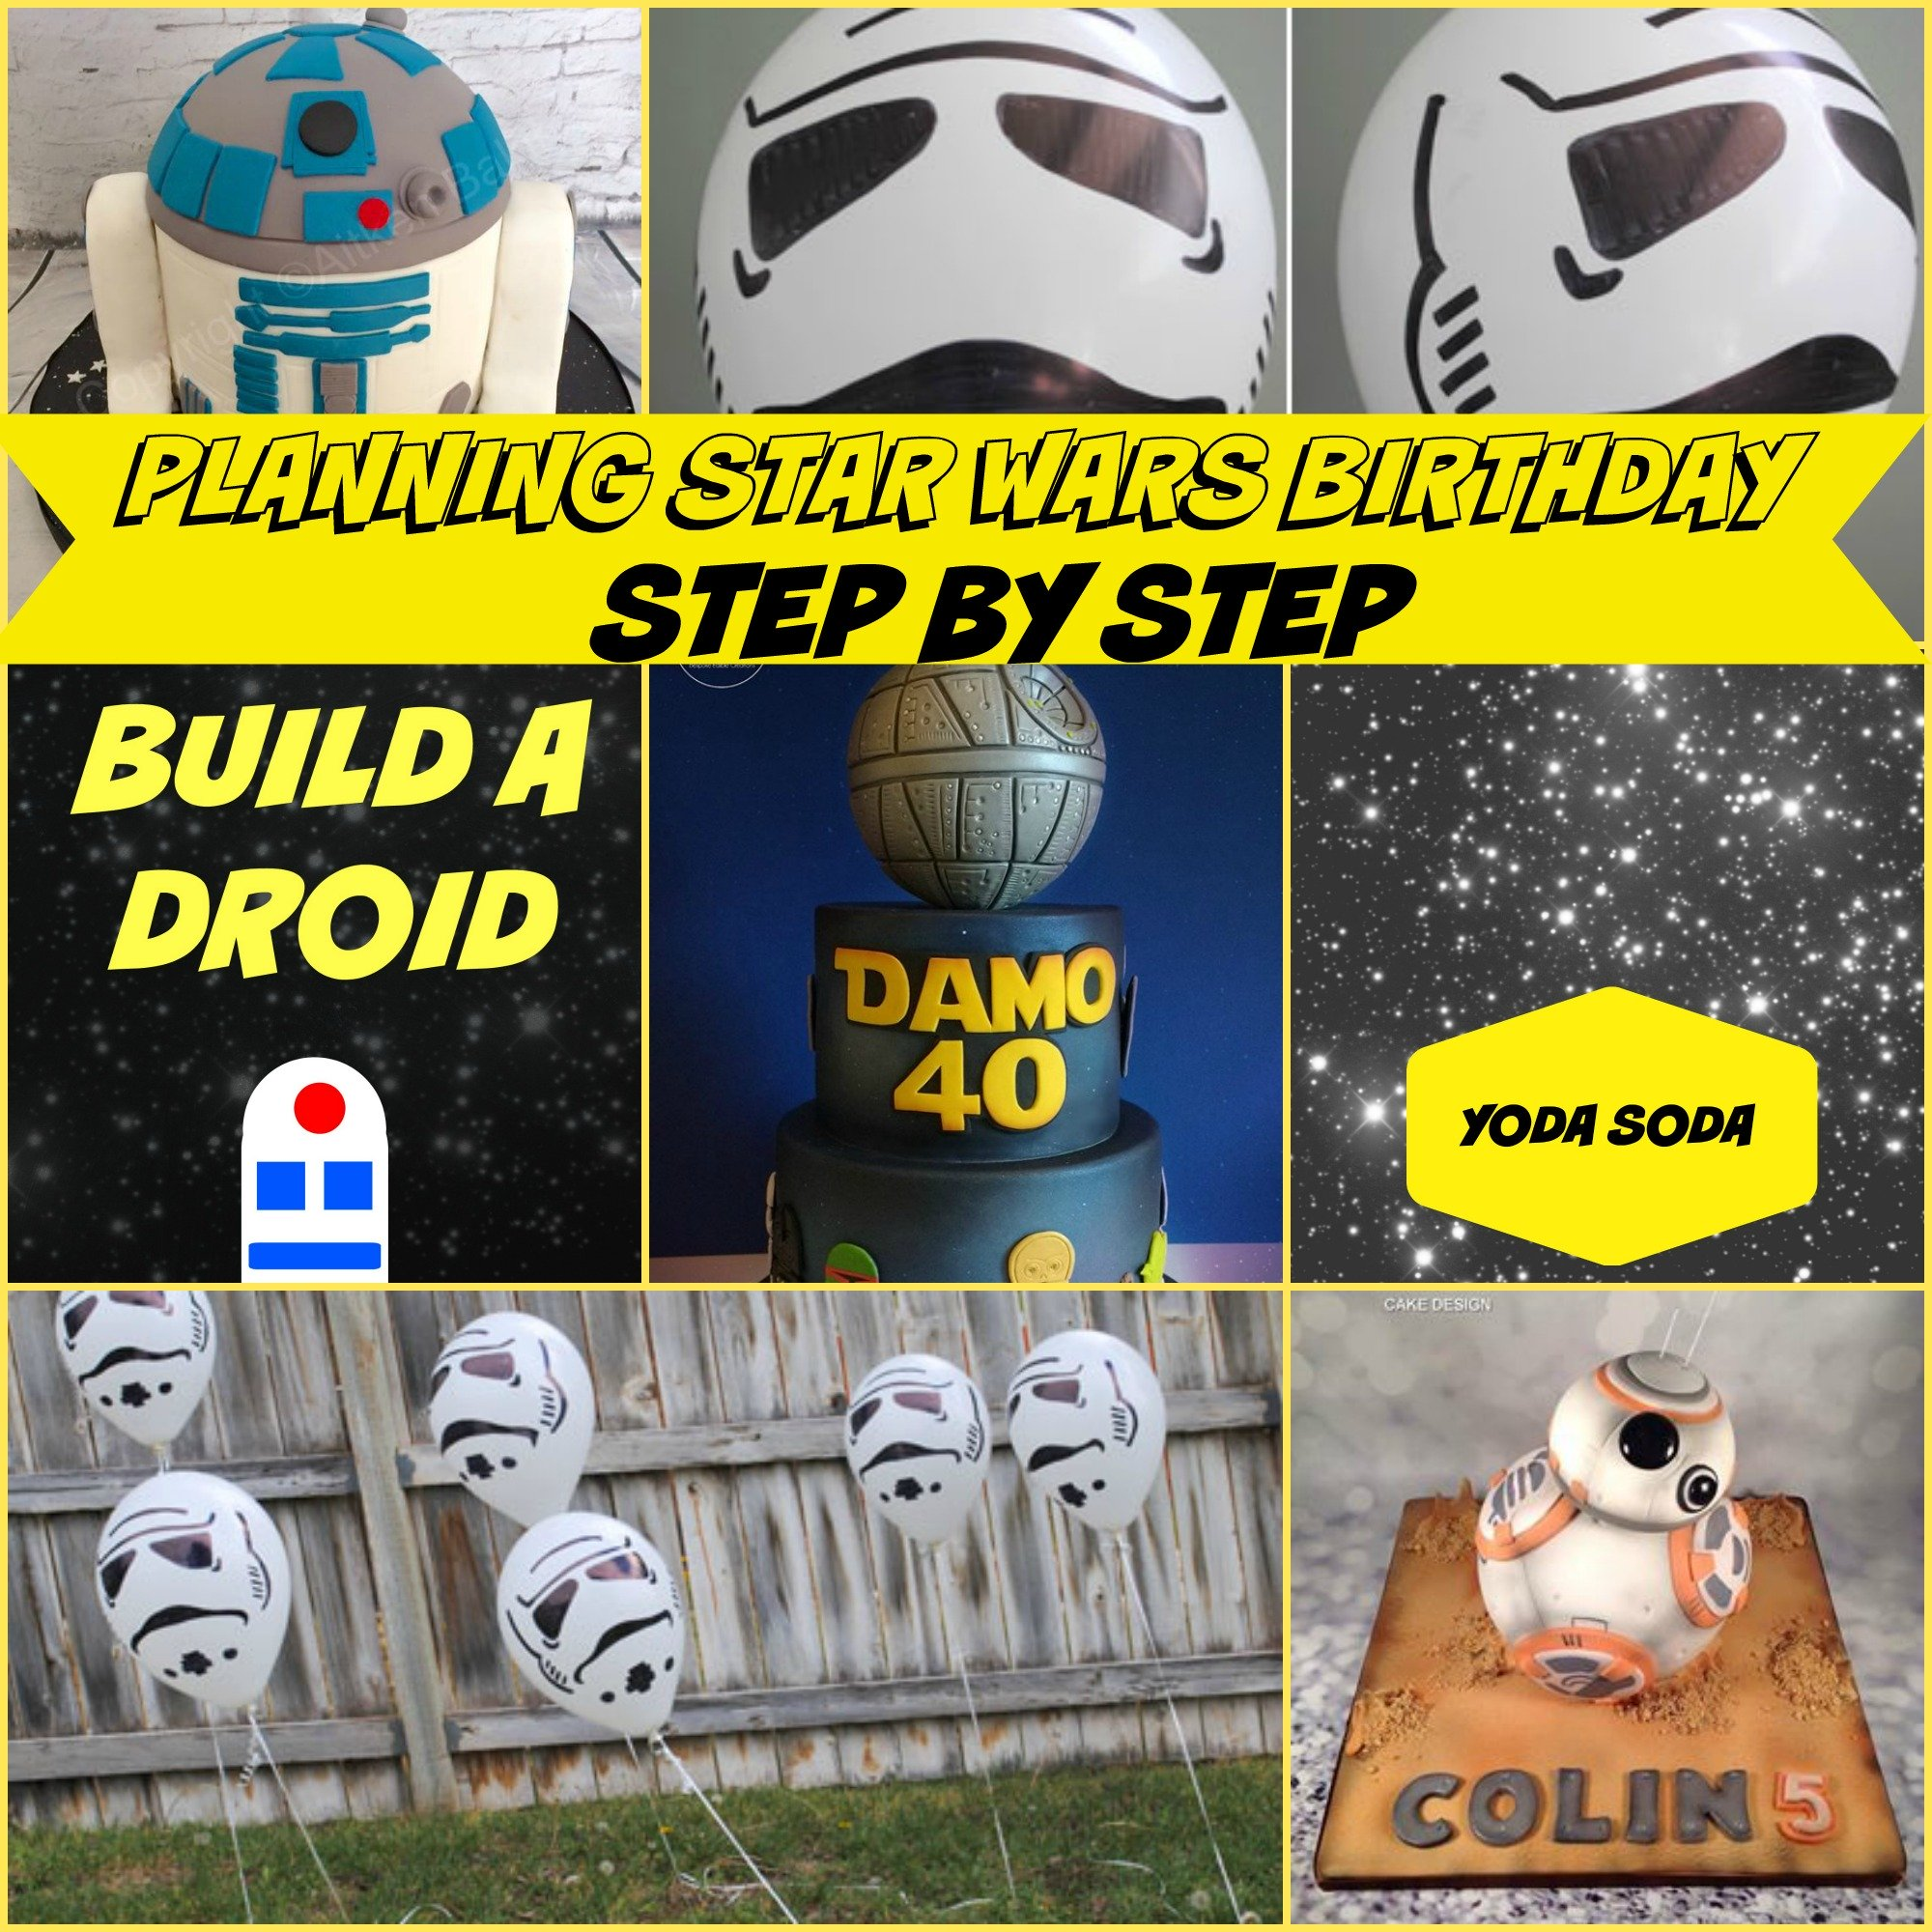 Star Wars Birthday Party Ideas Step by Step